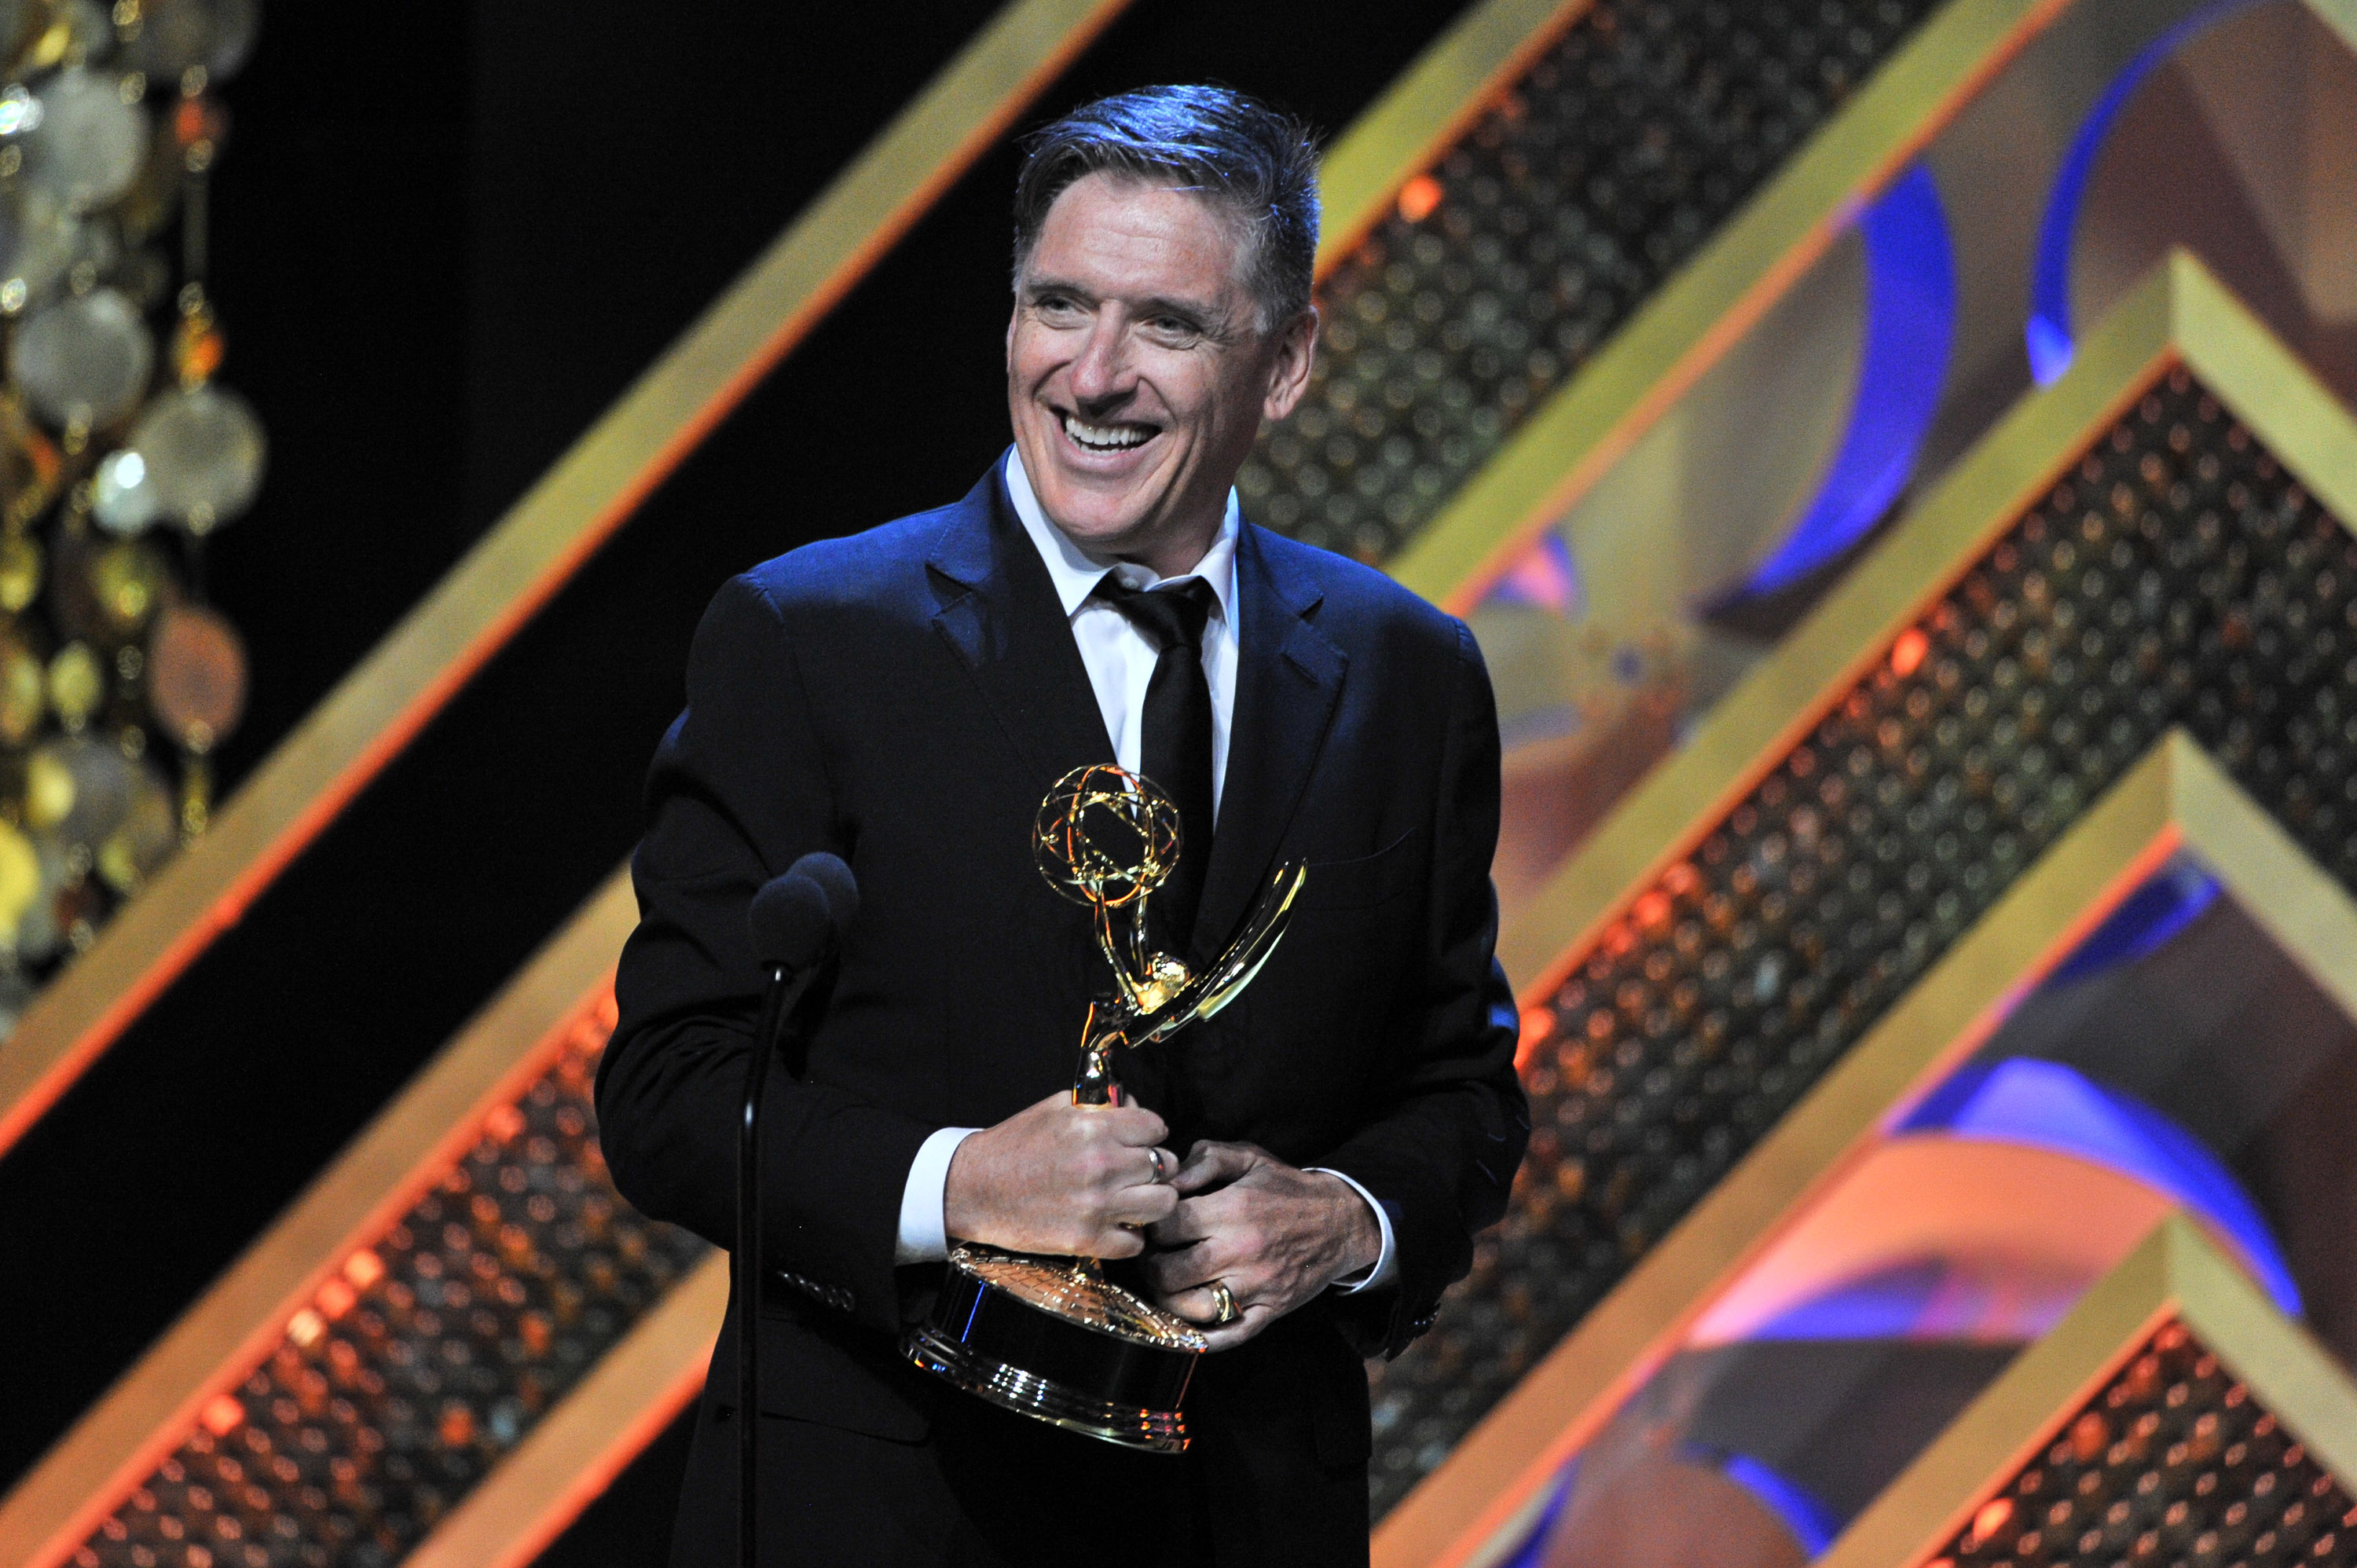 Craig Ferguson accepts the Outstanding Game Show award for Celebrity Name Game at the 42nd Annual Daytime Emmy Awards in 2015.